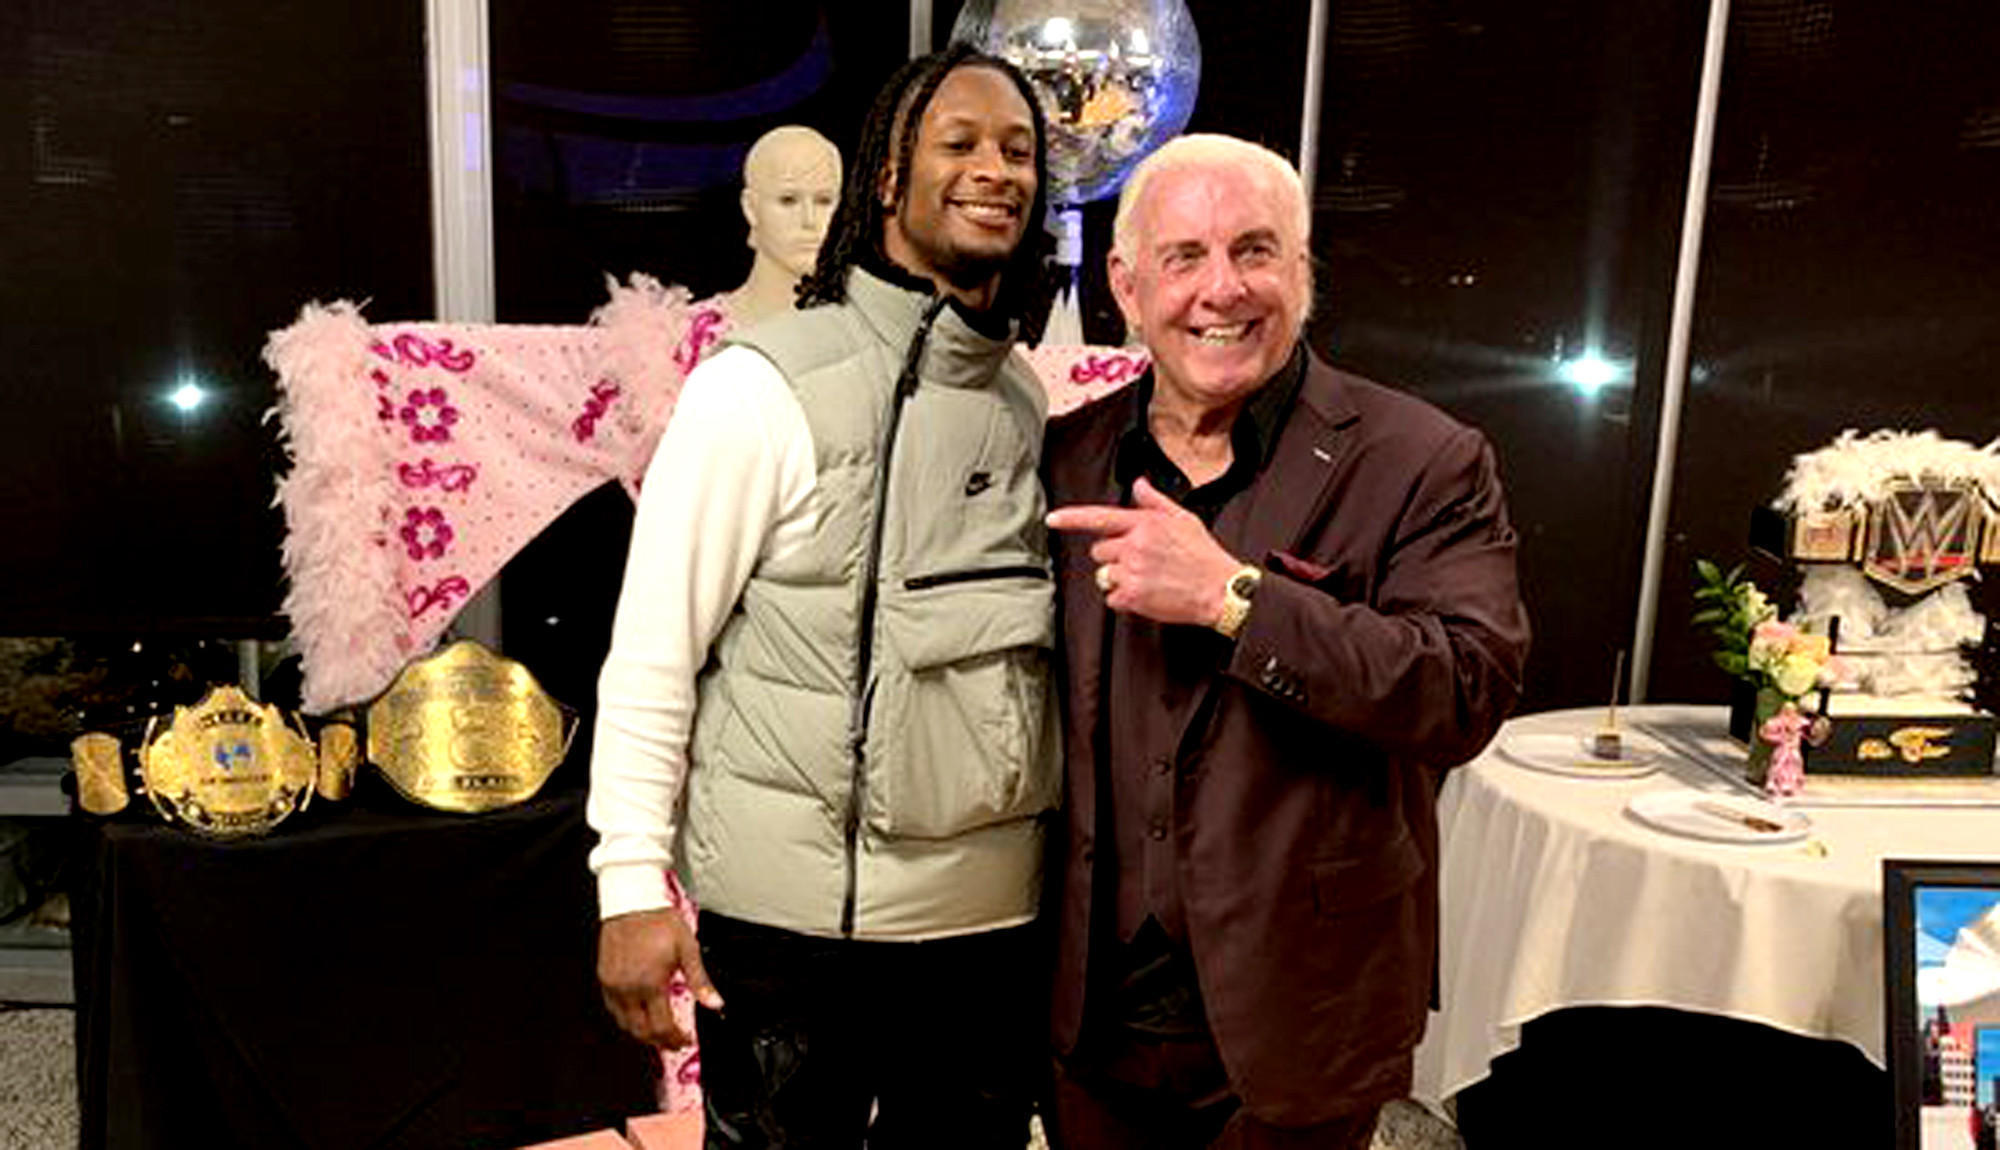 'Wooooo!' Ric Flair gets a surprise 70th birthday party